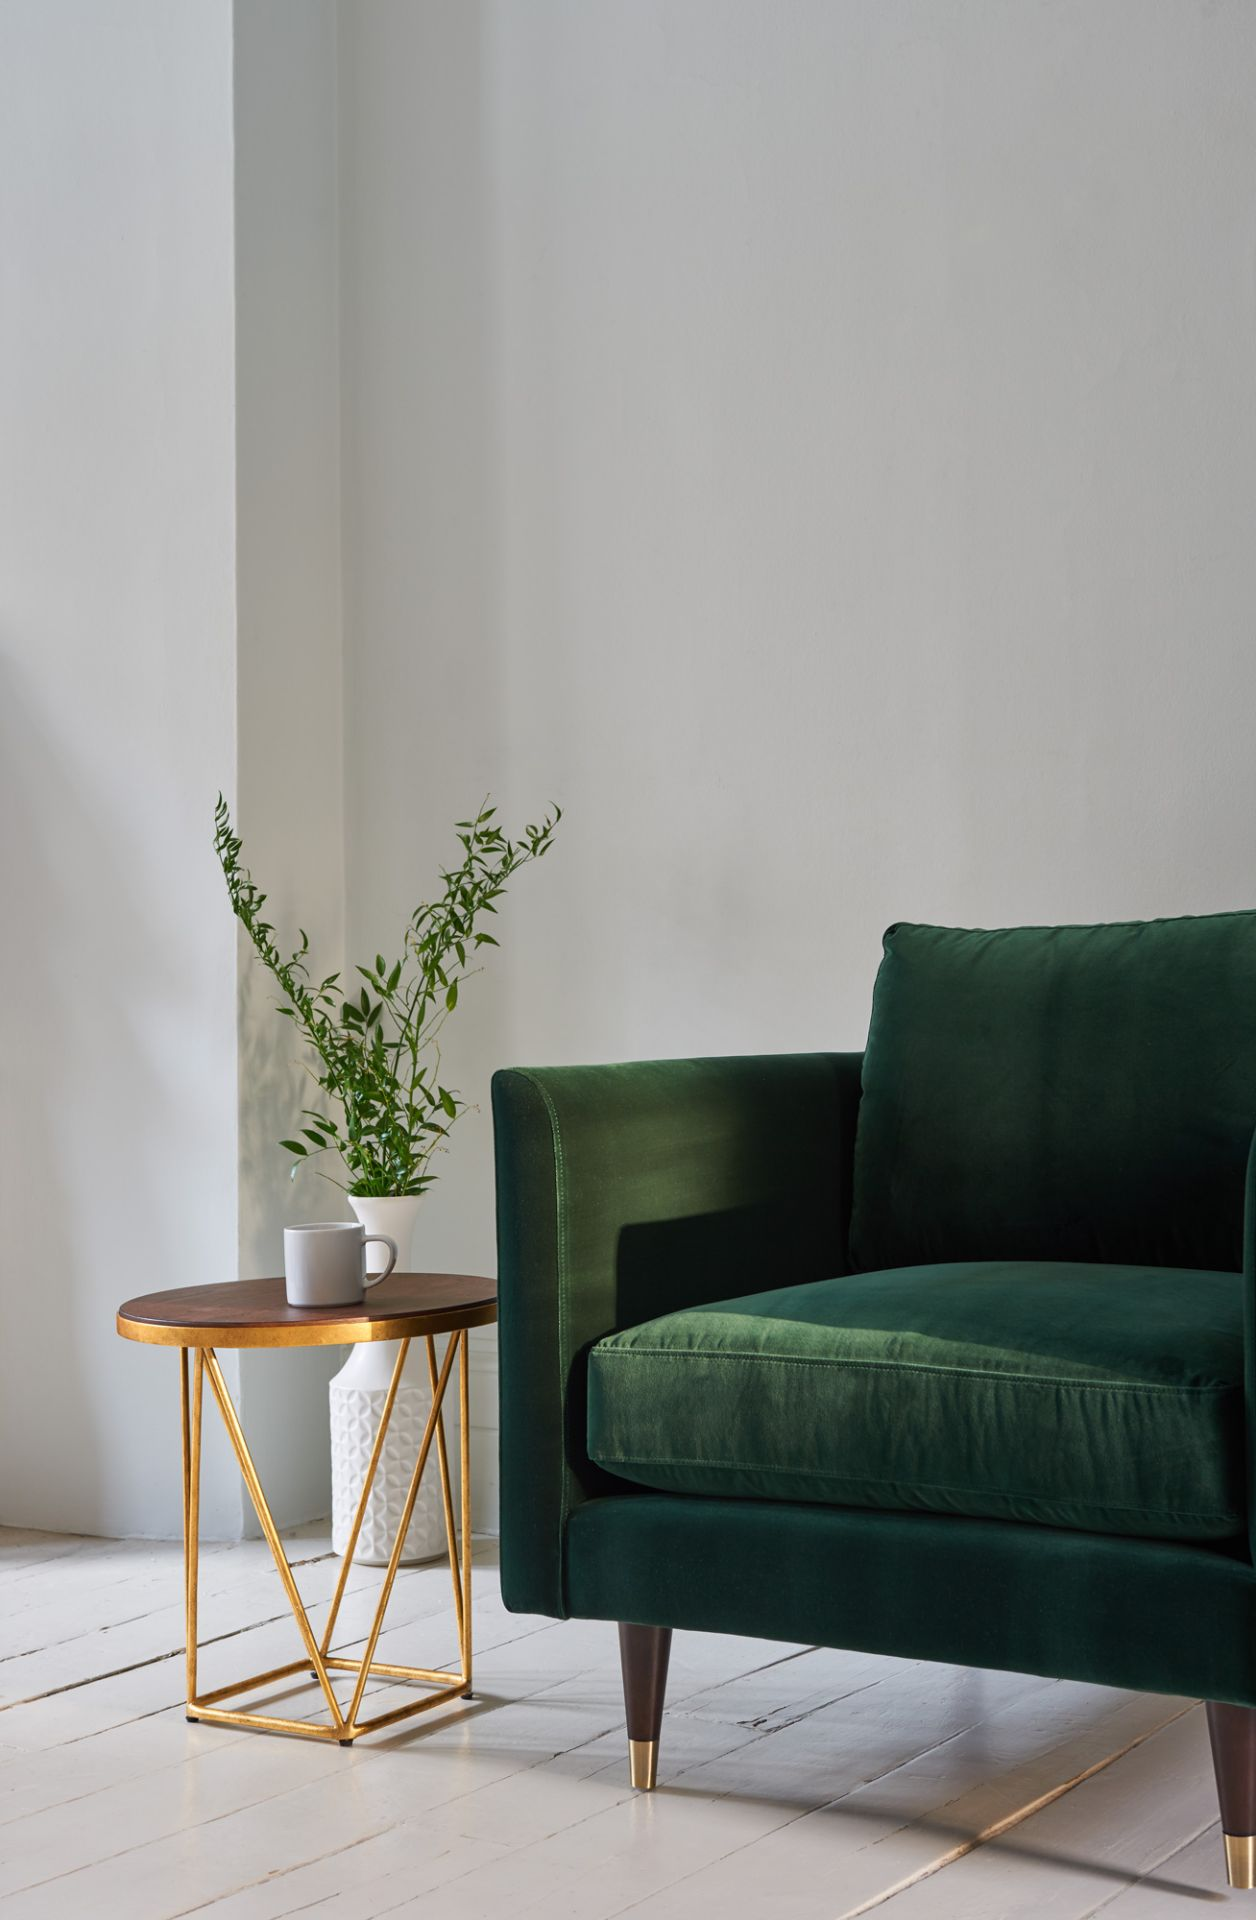 Lot 39 - Chaplin Side Table Chaplin Is A Contemporary Collection Of Occasional Furniture The Side Table Oozes